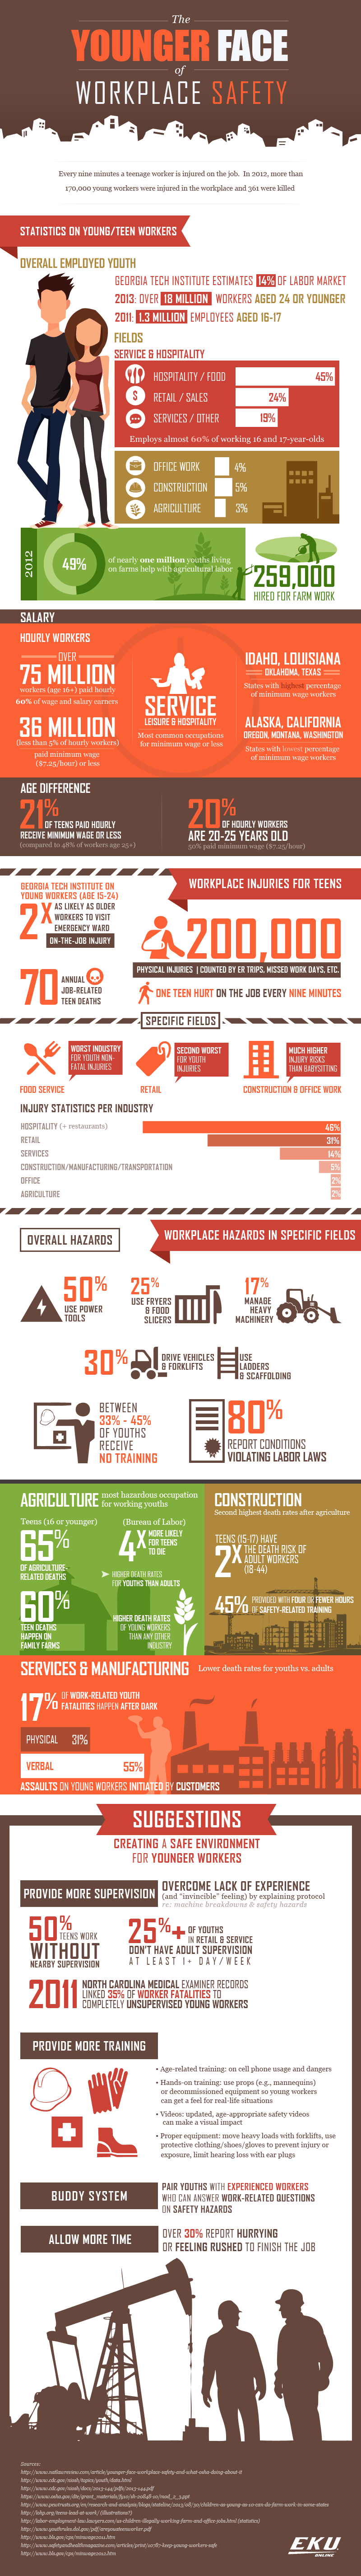 The Younger Face of Workplace Safety #Infographic